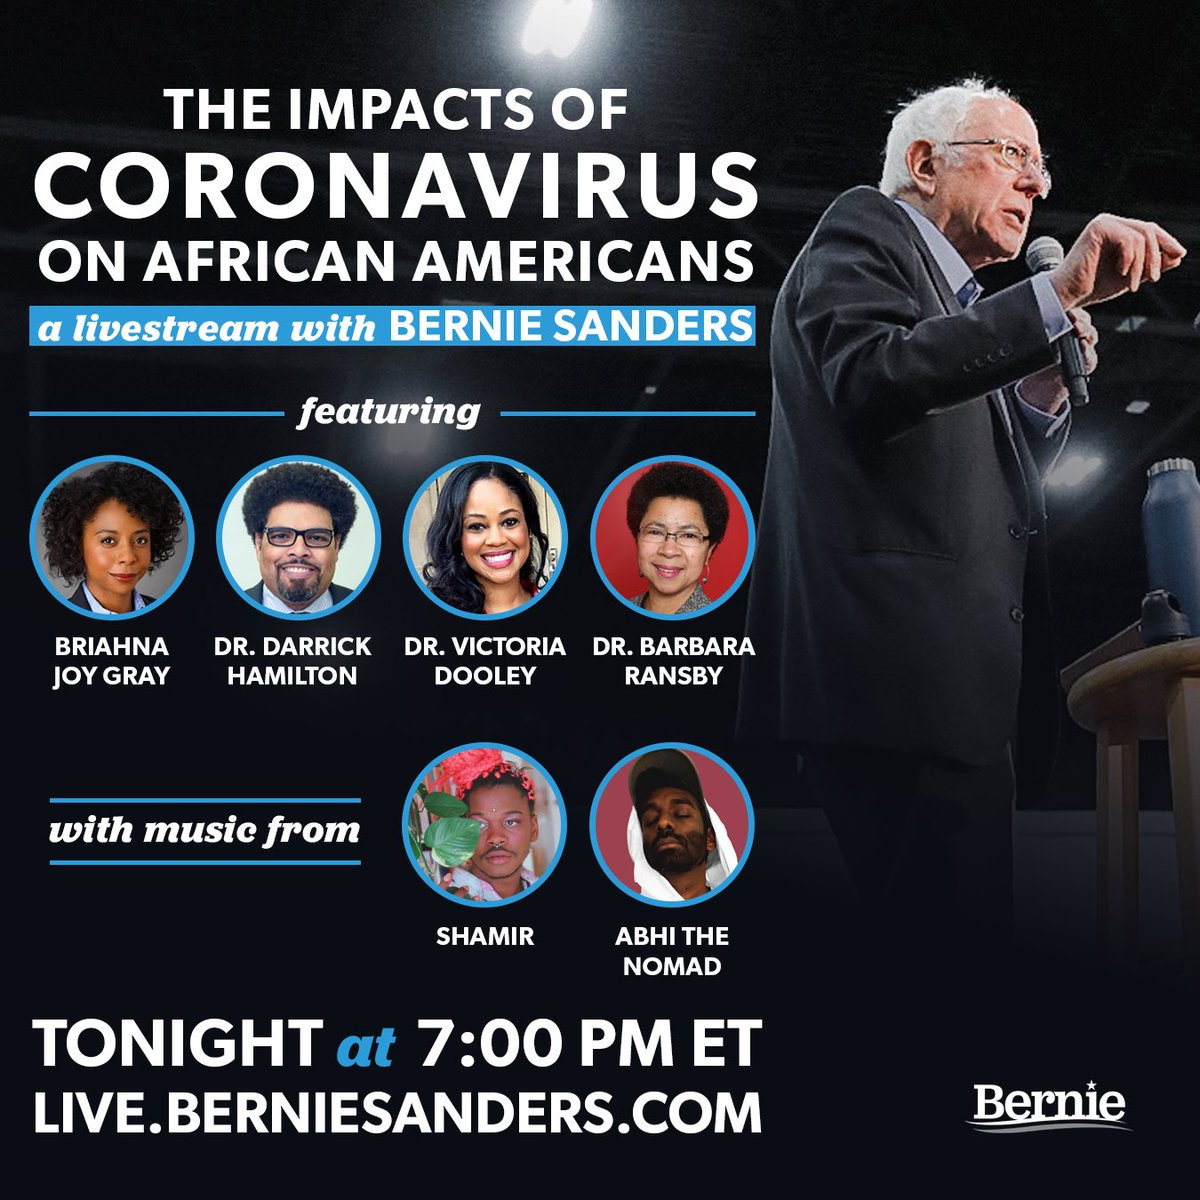 Please check us out at 7 PM EDT tonight discussing the impacts of the cornovirus pandemic on African Americans